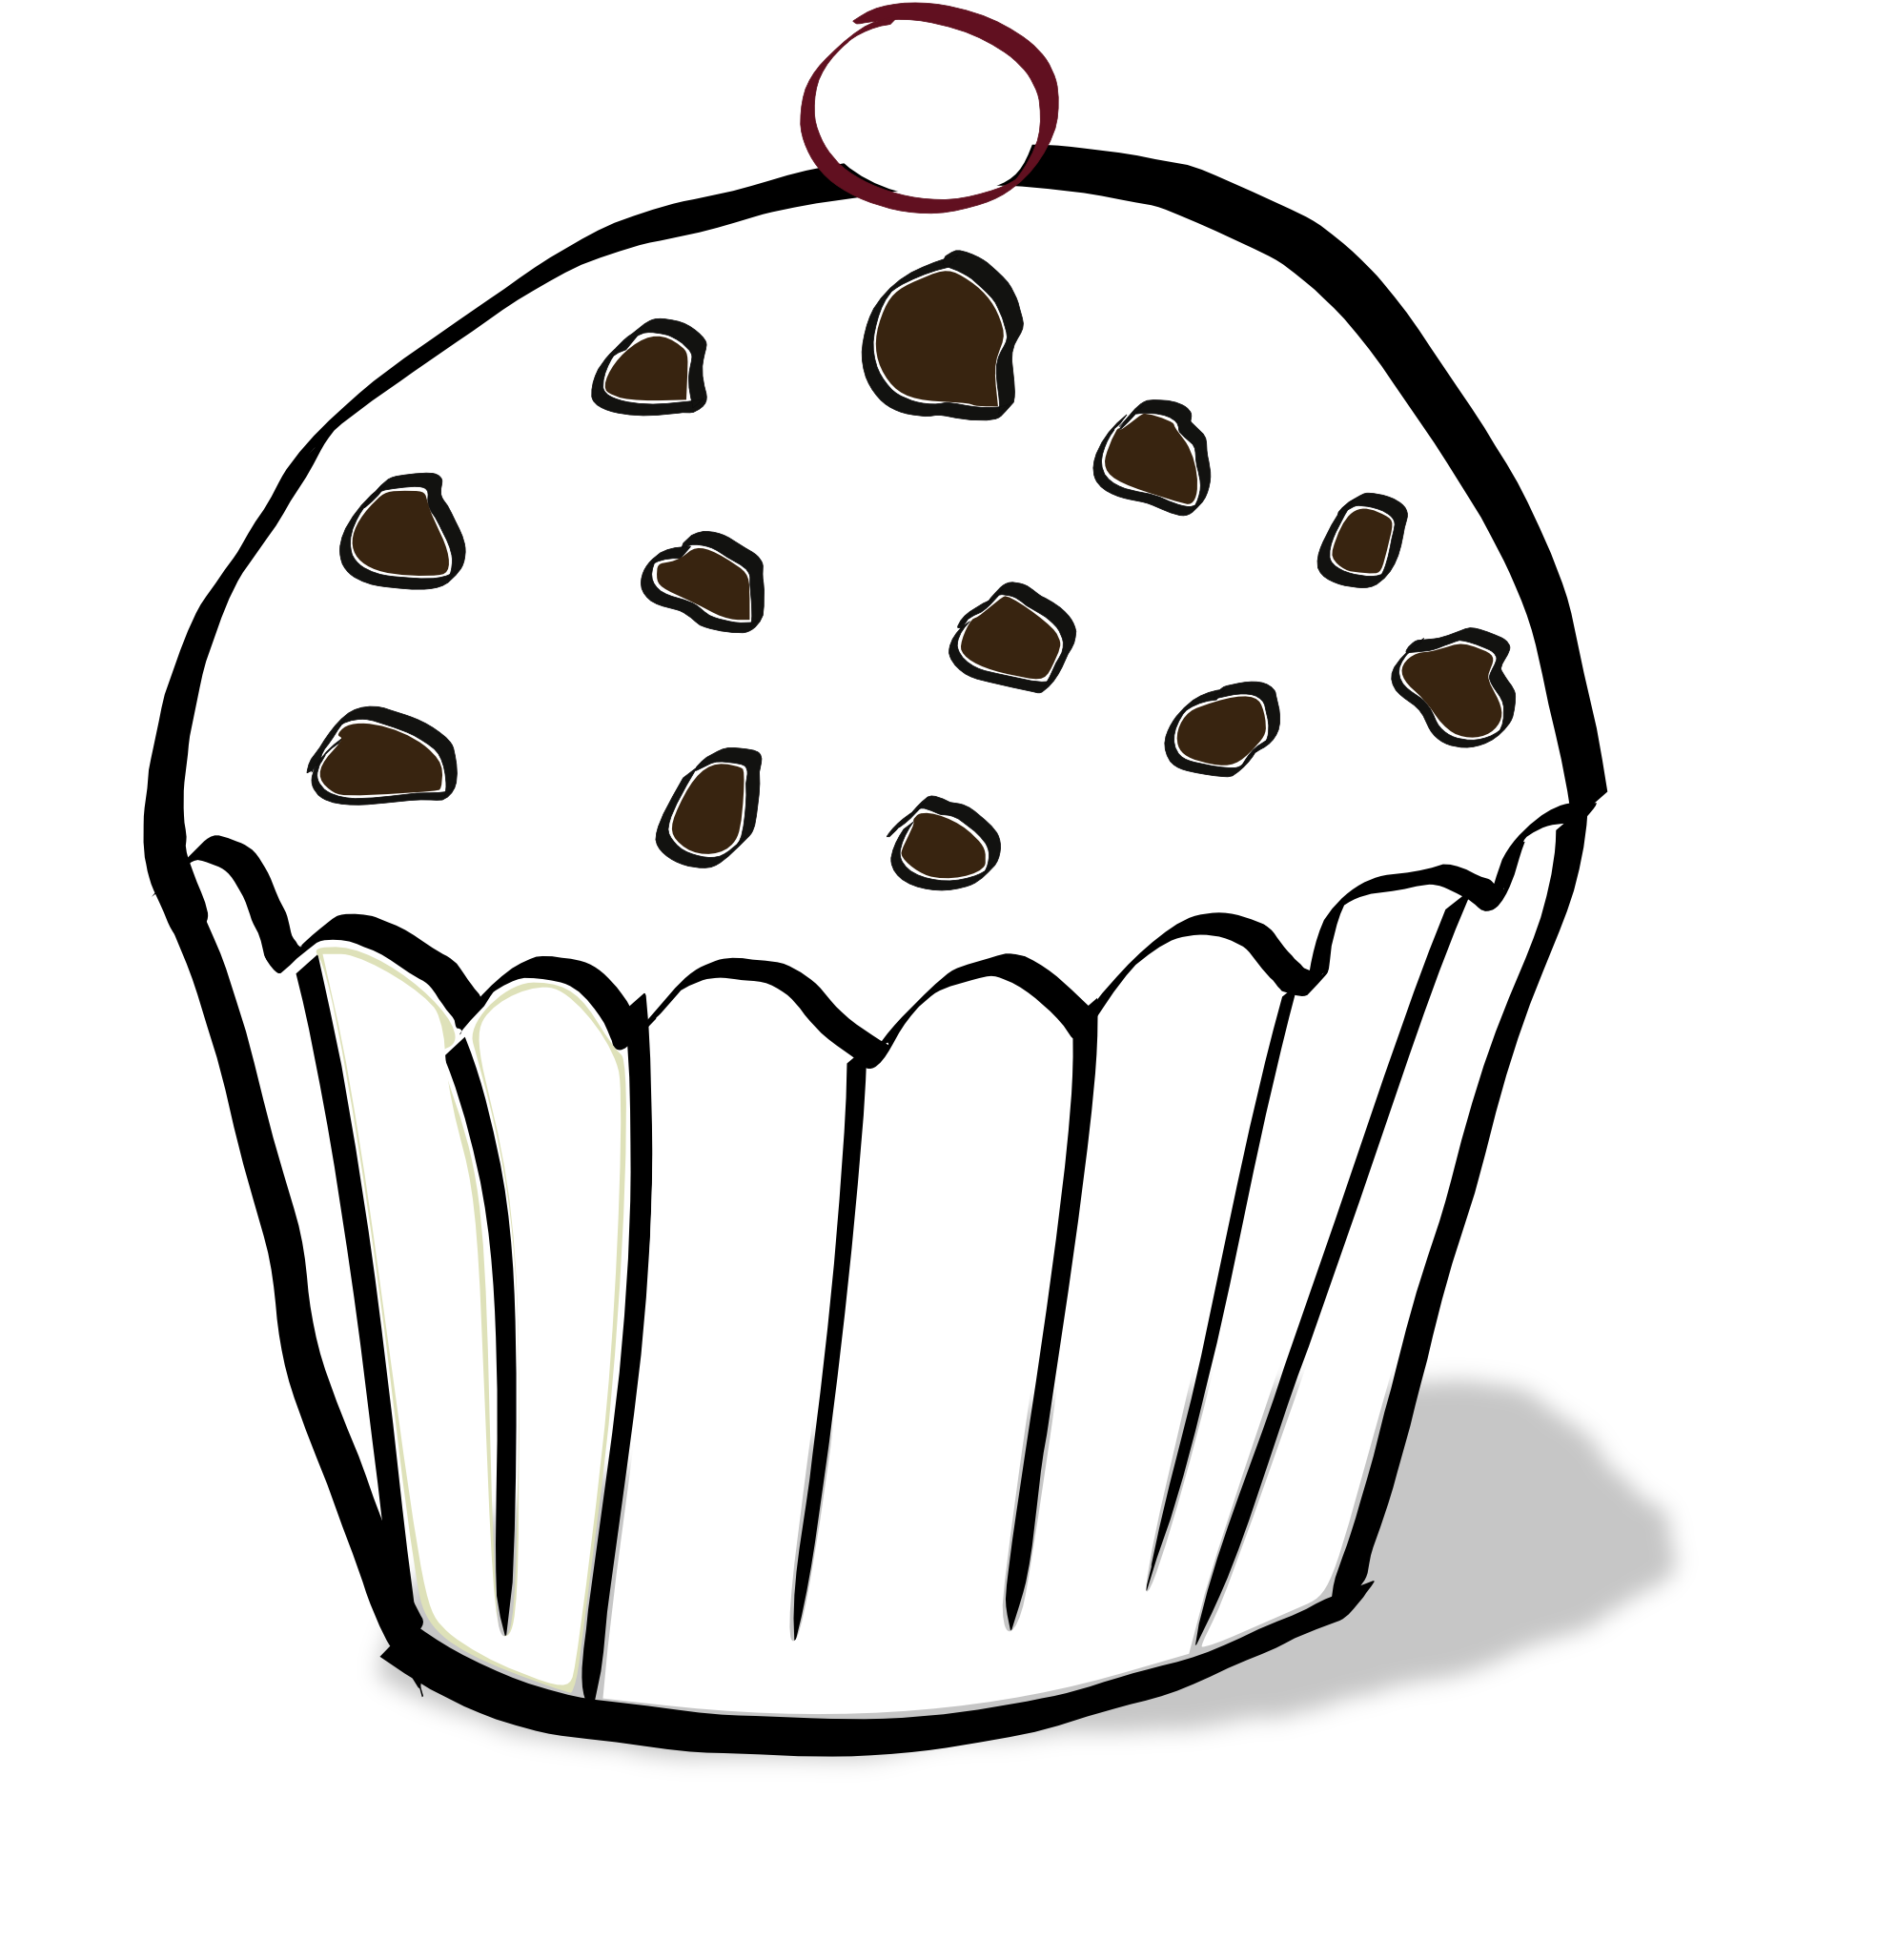 Chocolate Chip Cookies Coloring Pages Free Download Best Chocolate